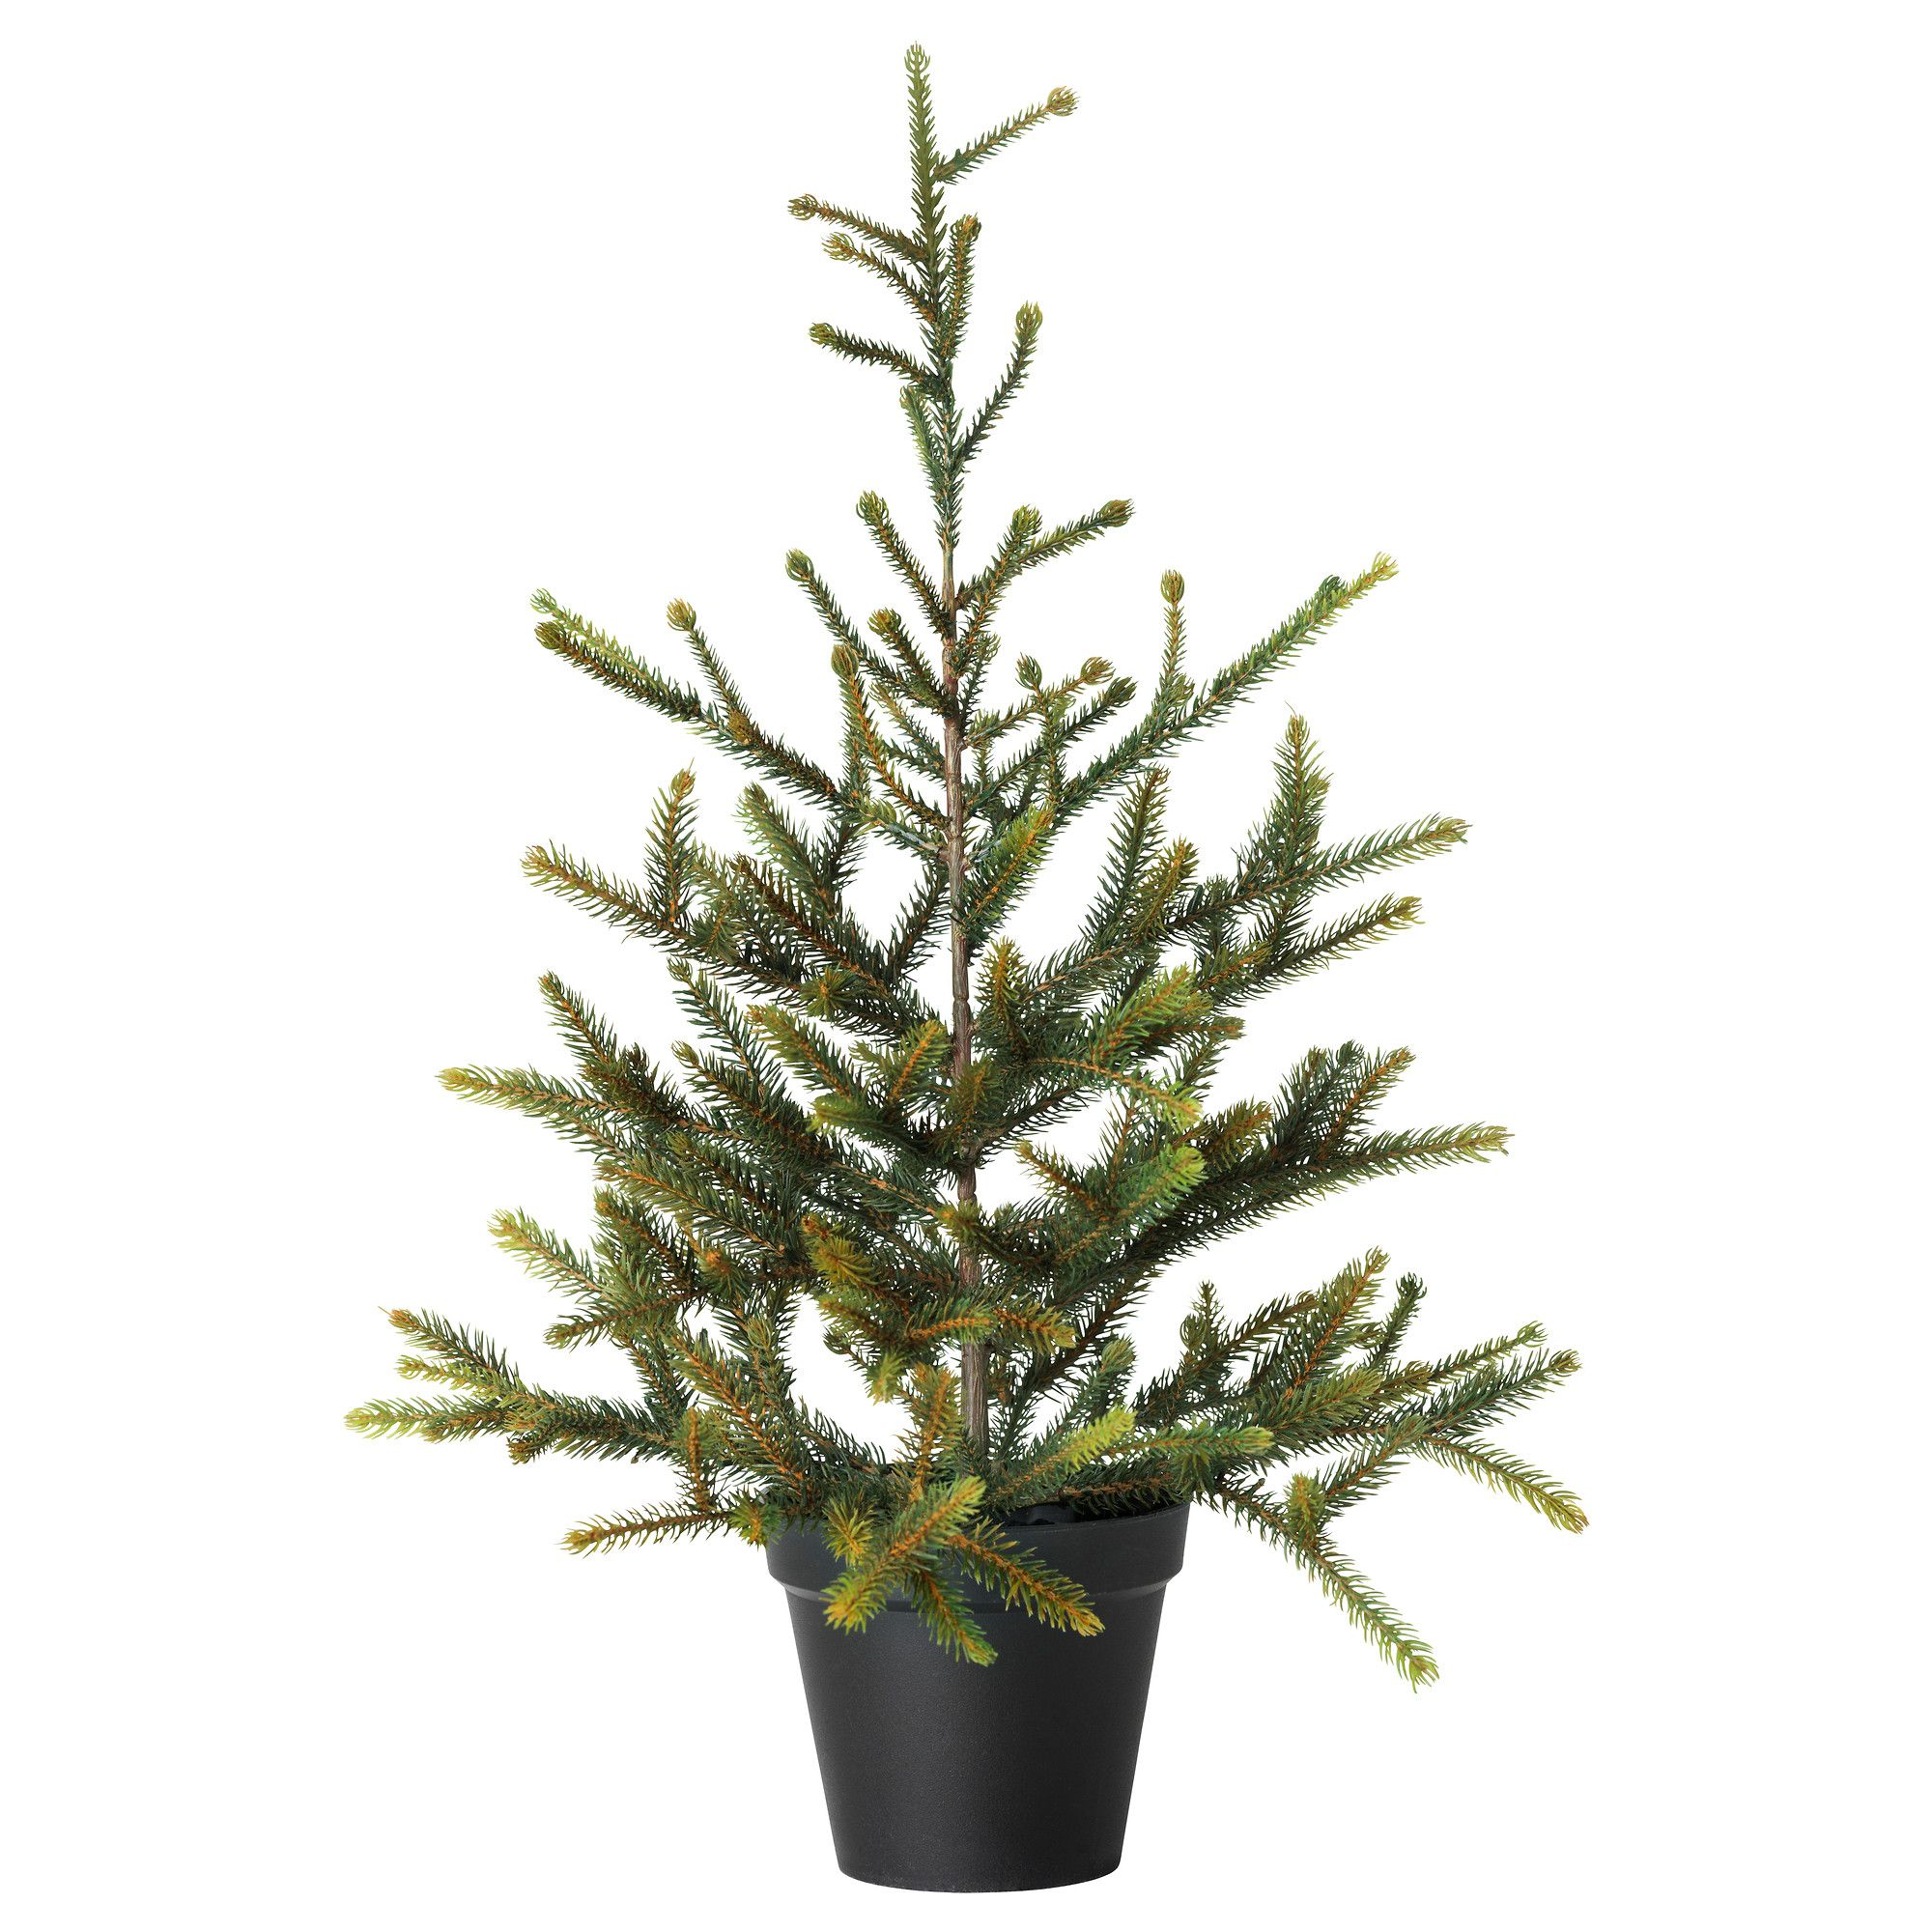 Ikea Fejka Artificial Potted Christmas Tree 15 22 Inches Tall Need To A Of These This Year Before They Re Gone